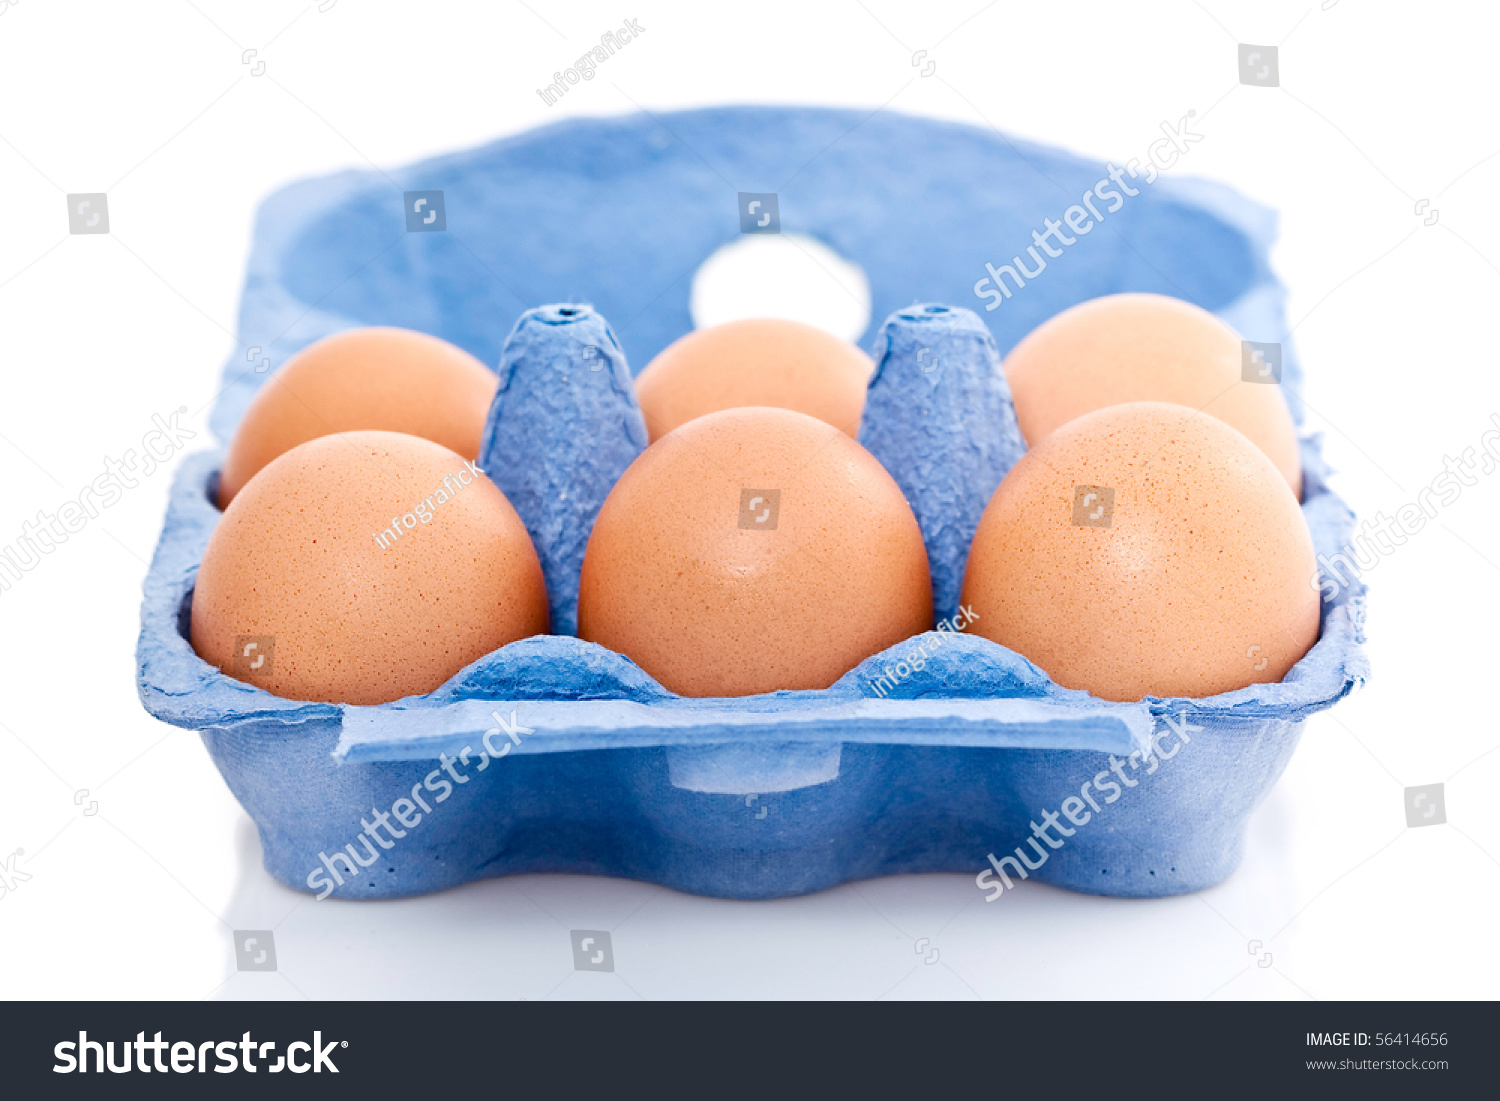 Blue Box Or Carton Of Half A Dozen Fresh Eggs Isolated On White Background Stock Photo 56414656 : Shutterstock